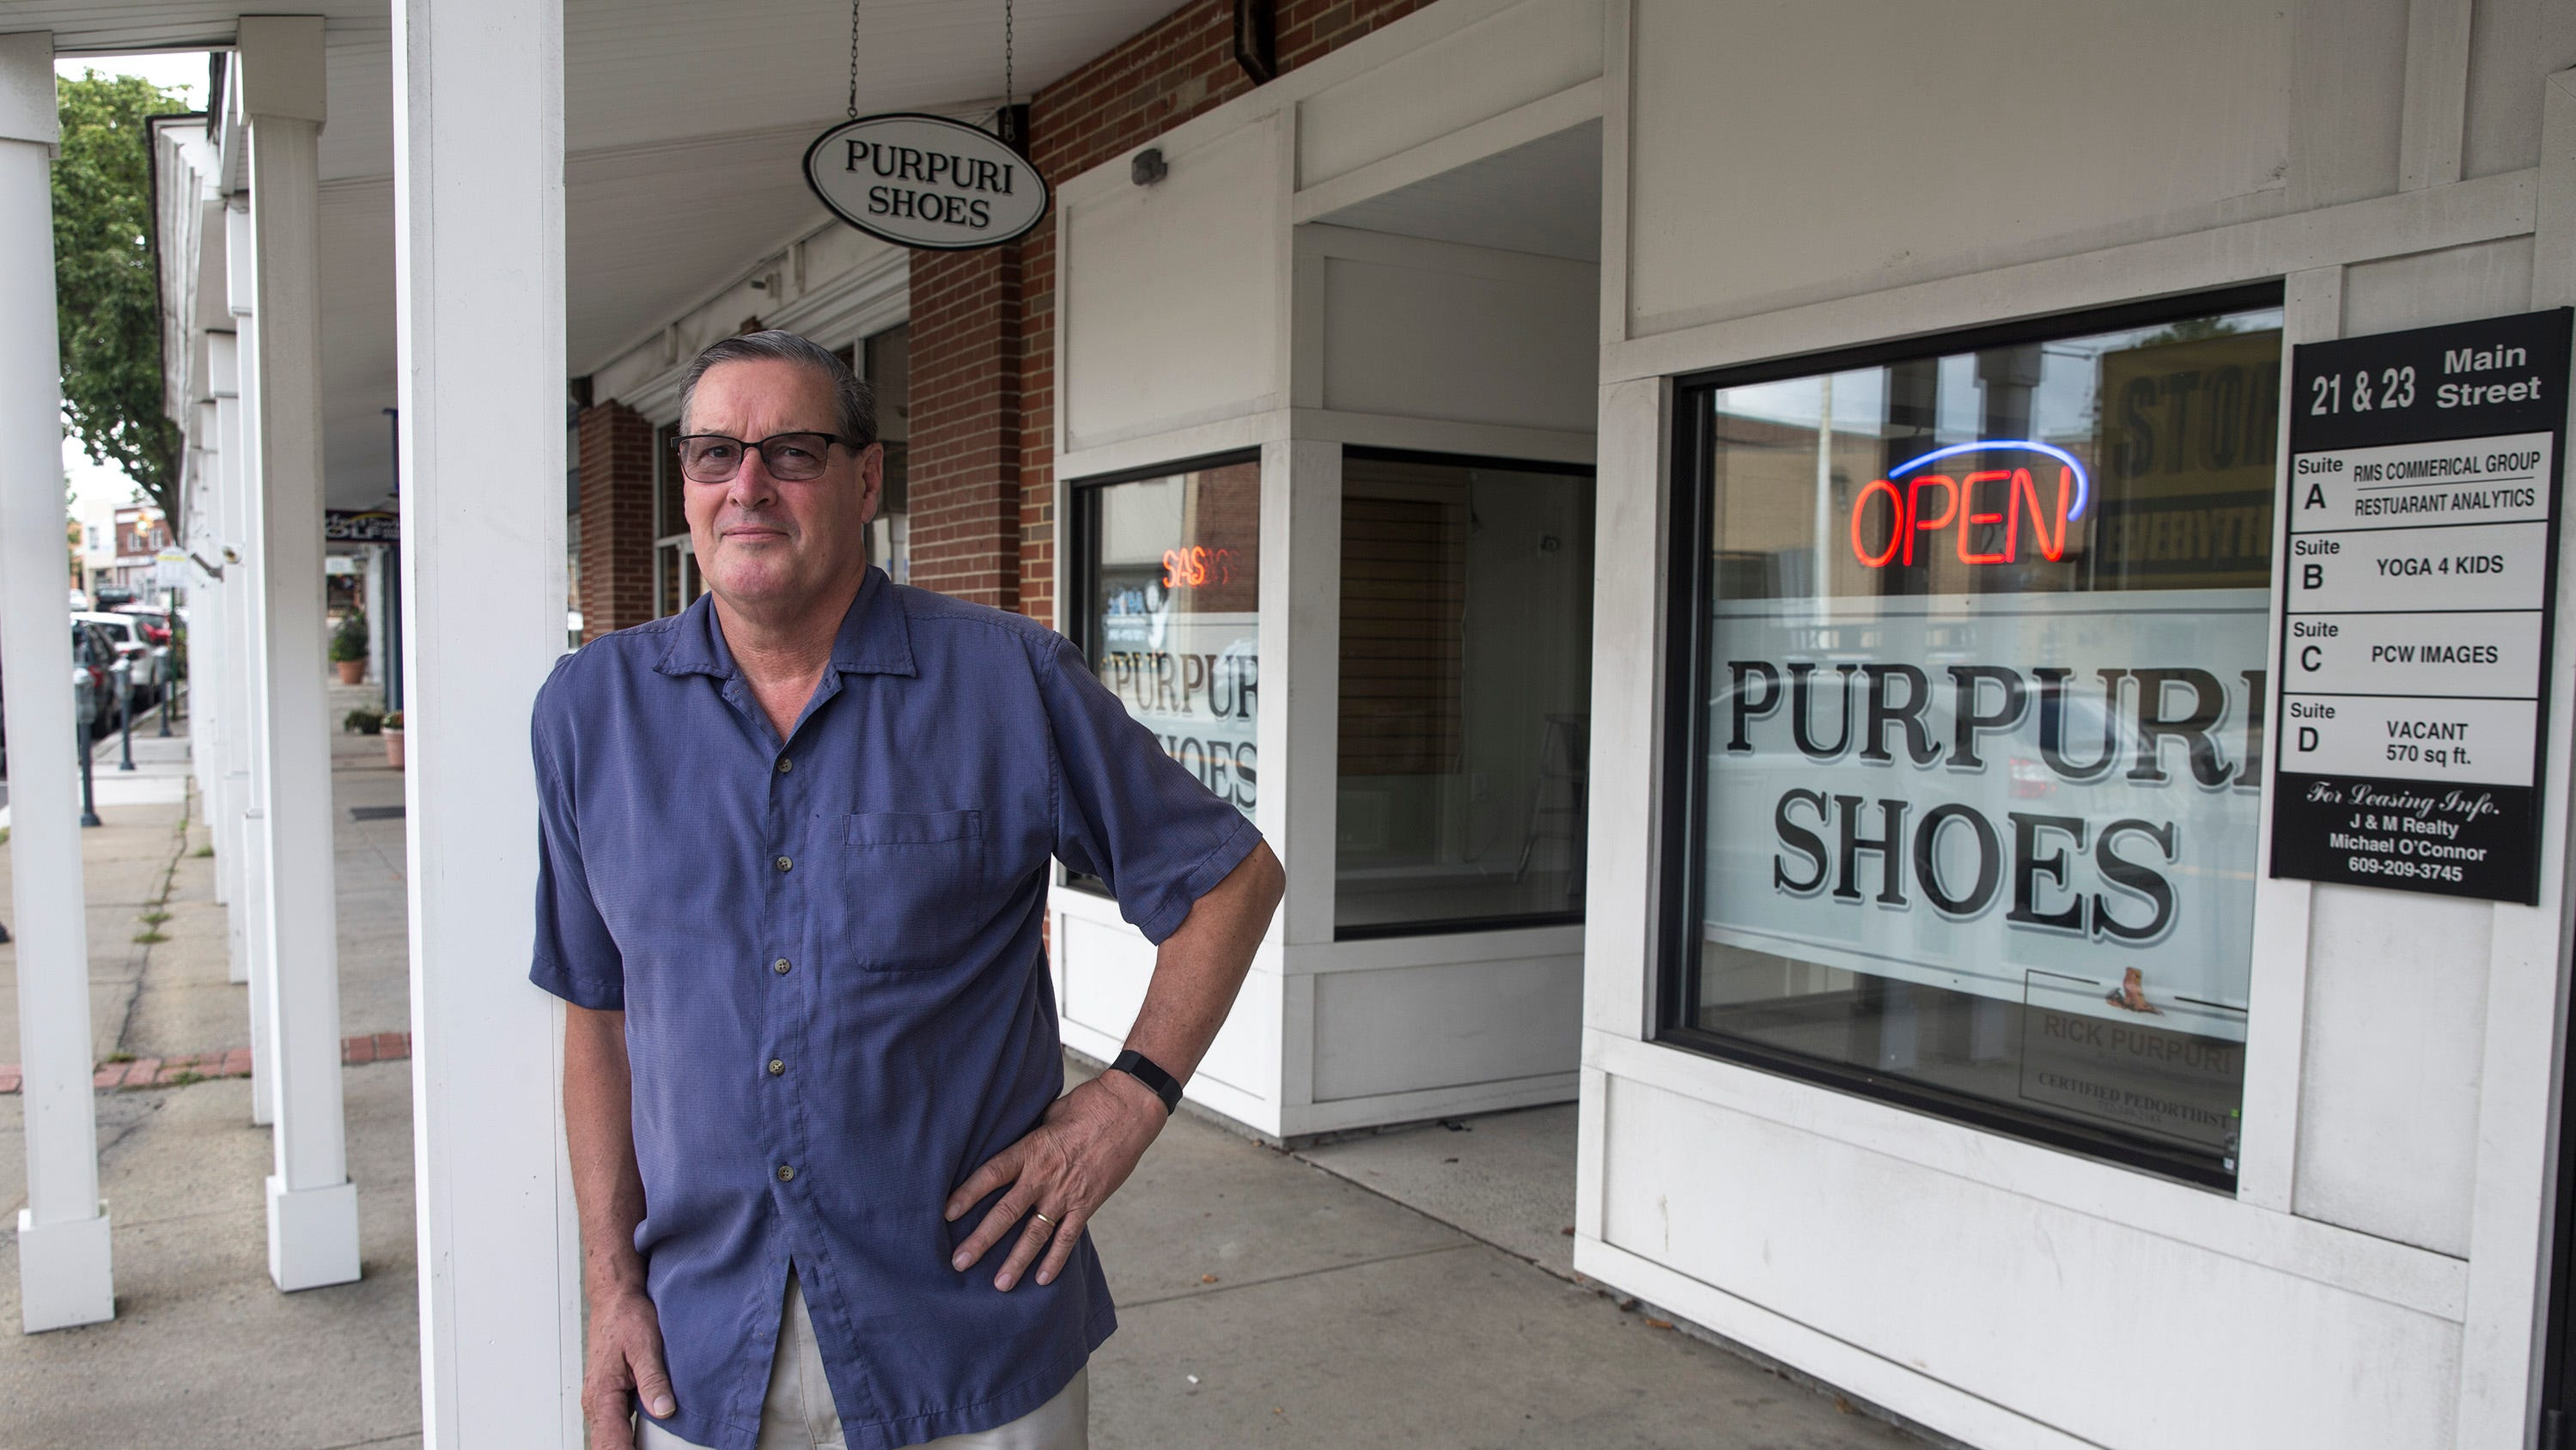 Purpuri Shoes in Toms River closes after 102 years in one family